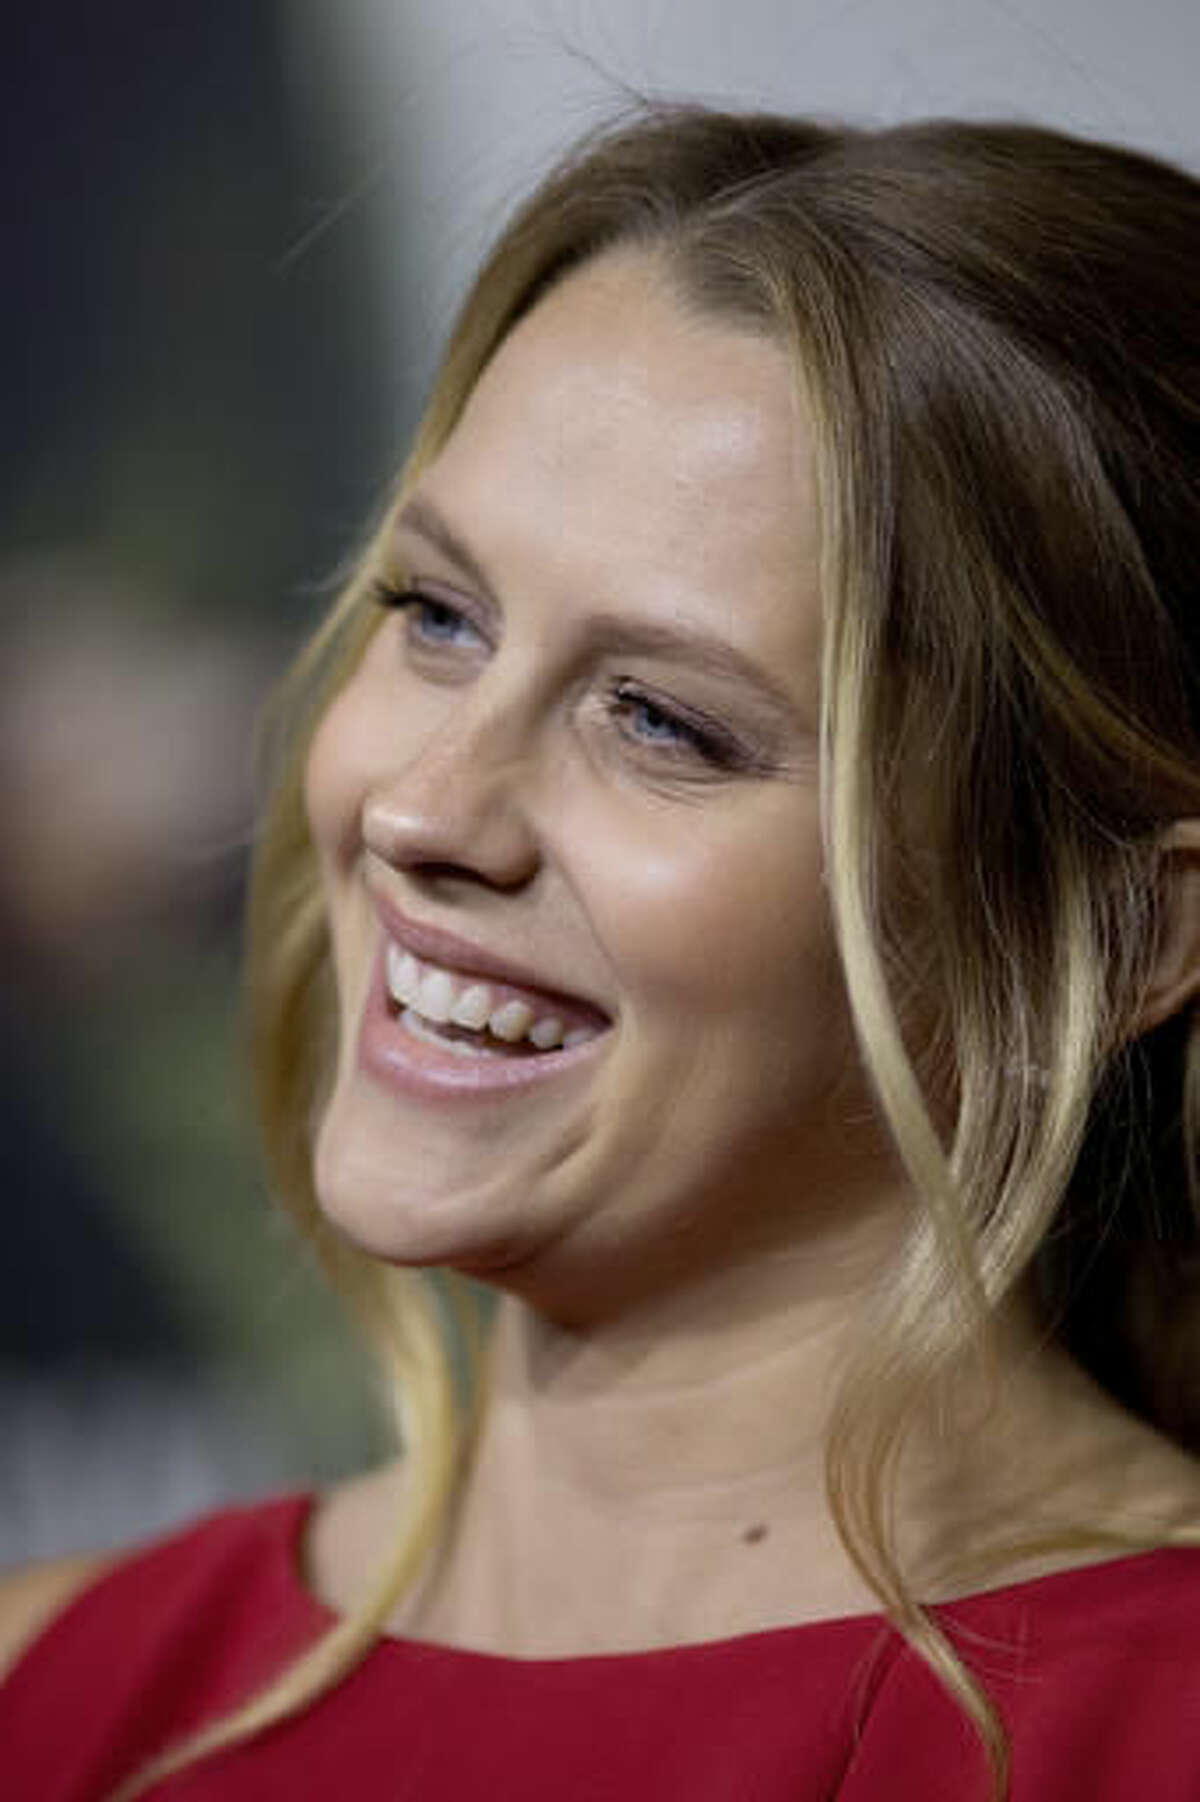 """Actress Teresa Palmer poses on the red carpet for a screening of the movie """"Hacksaw Ridge,"""" at The National WWII Museum, in New Orleans, Wednesday, Oct. 26, 2016. Palmer plays the role of Dorothy Schutte. The film depicts the life of World War II medic and Congressional Medal of Honor recipient Desmond Doss. (AP Photo/Max Becherer)"""